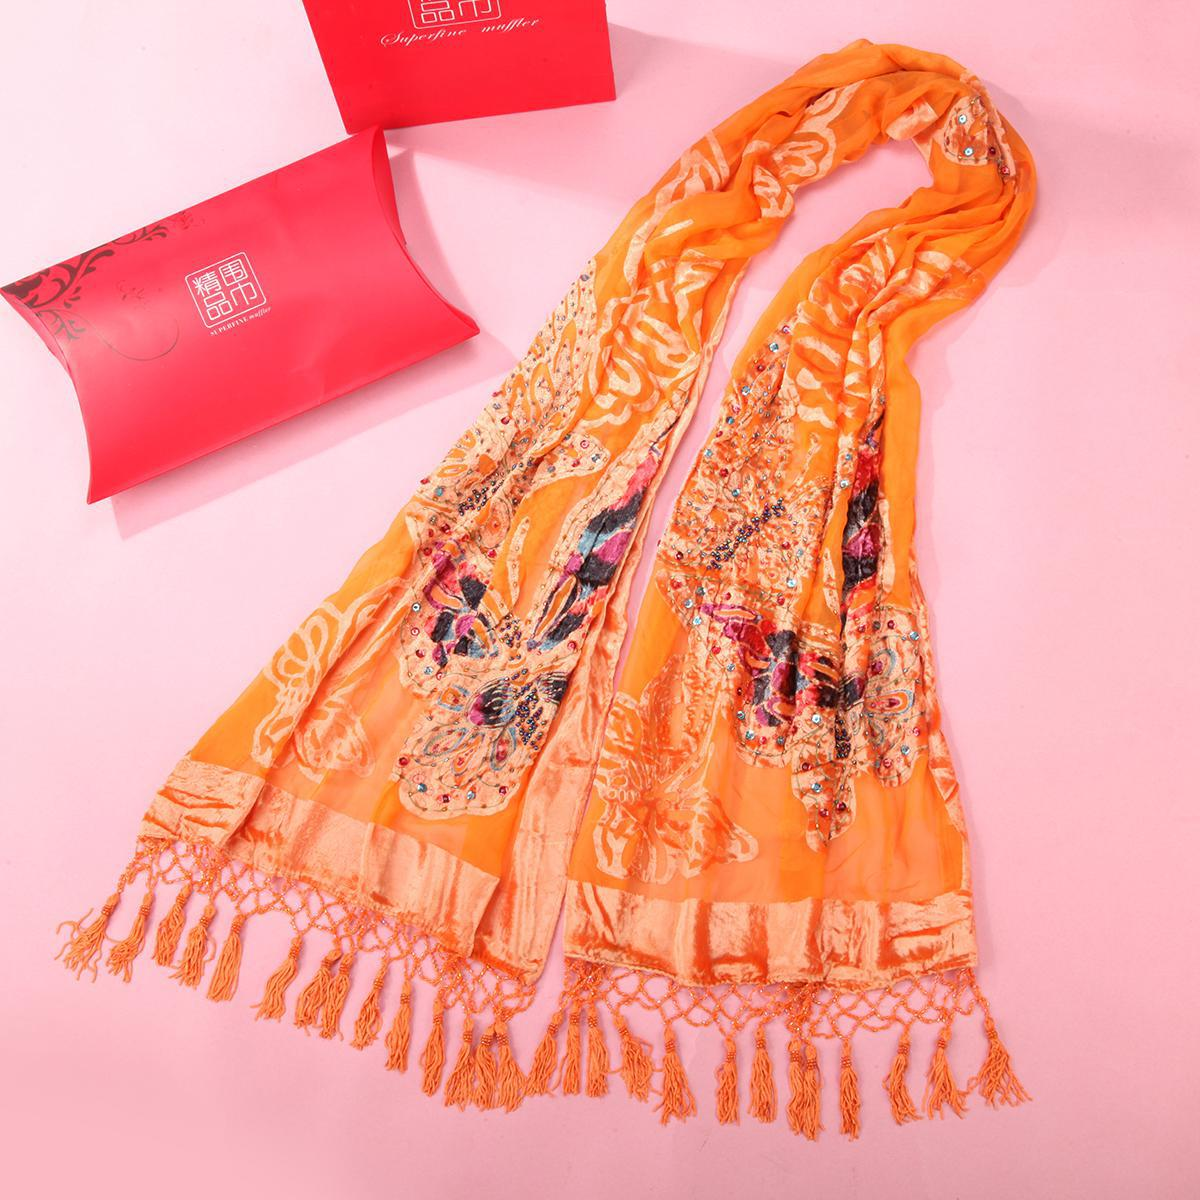 Large Size Shawls Women's Velvet   Scarves     Wrap   Orange Handmade Beaded Muslim Hijab Hufanda Butturfly Shawl Cape Poncho   Scarf   Chal